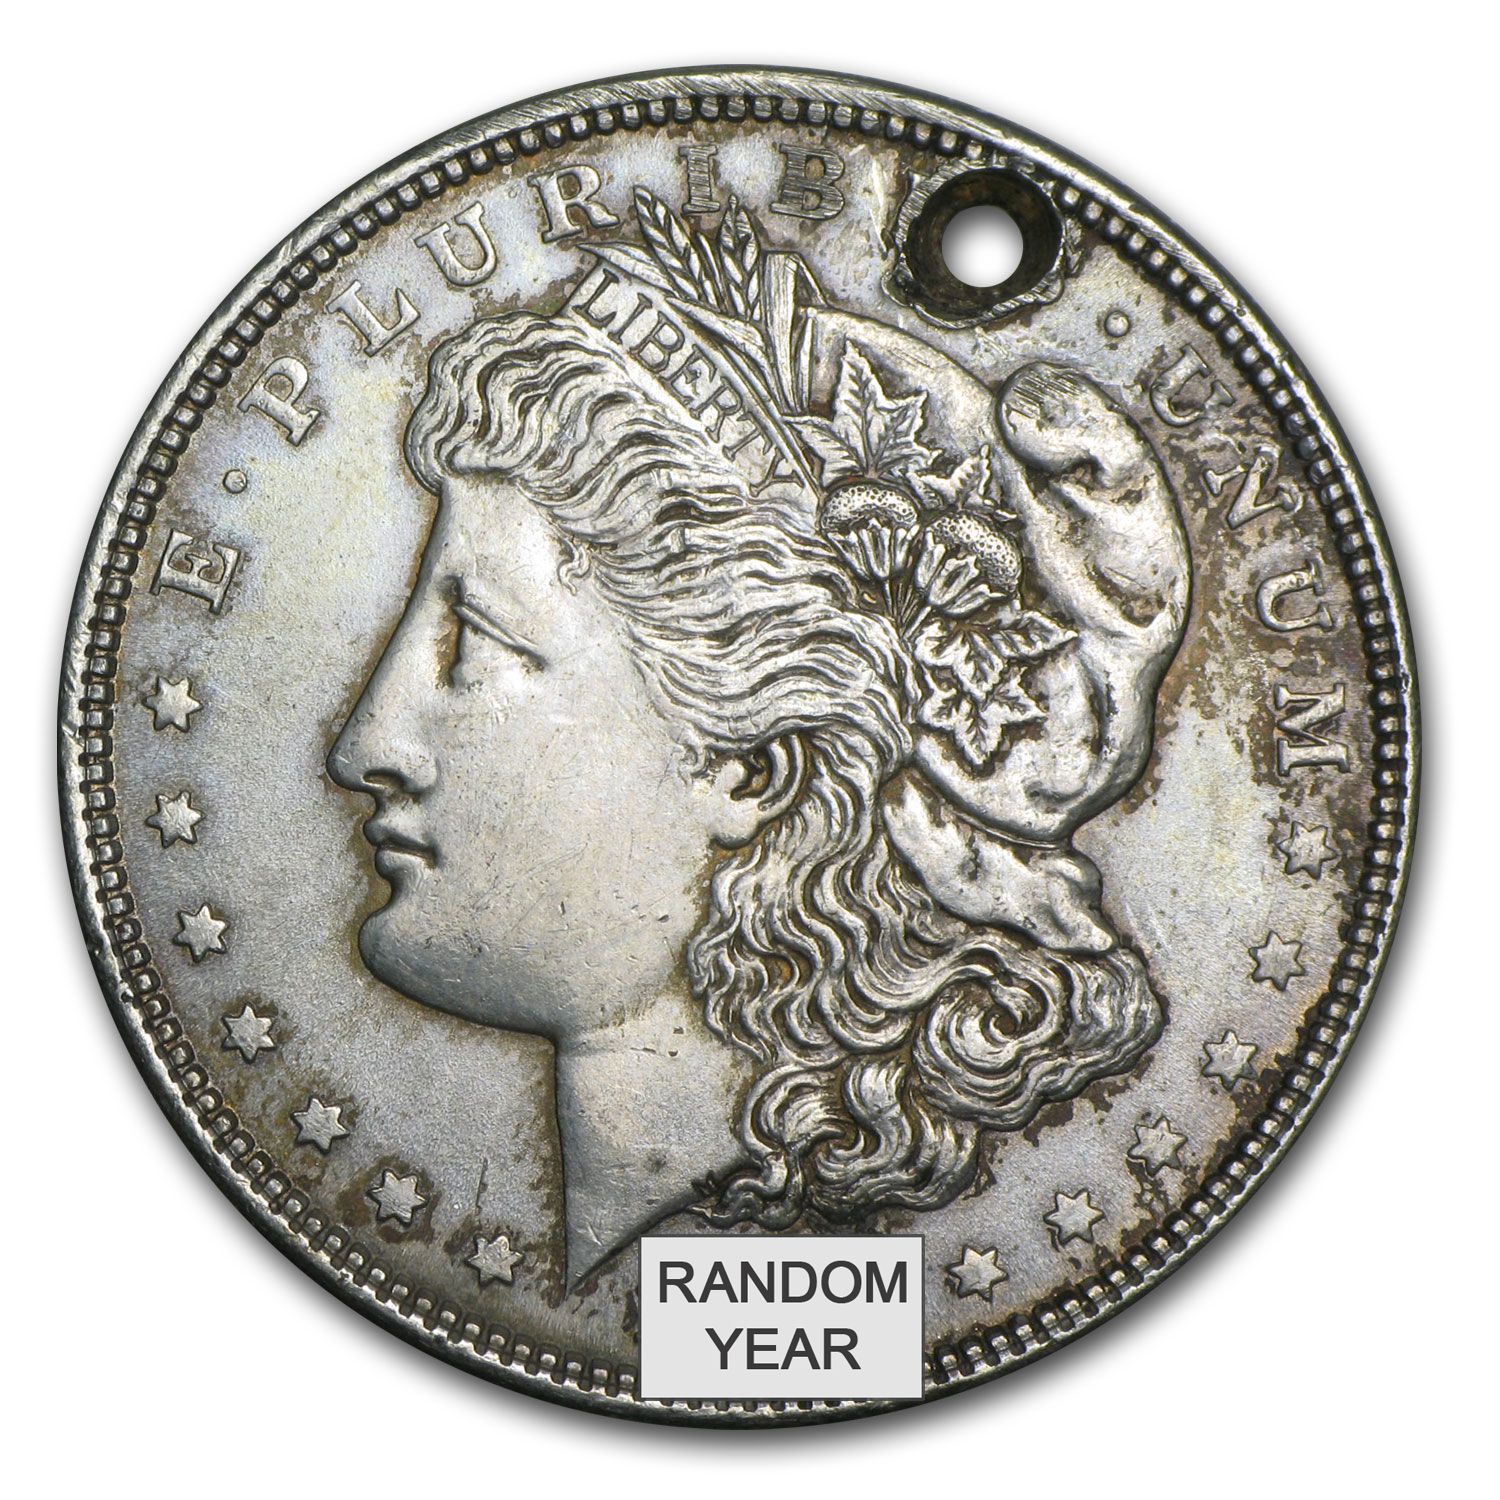 Morgan &/or Peace Silver Dollars (Worse Than Cull)